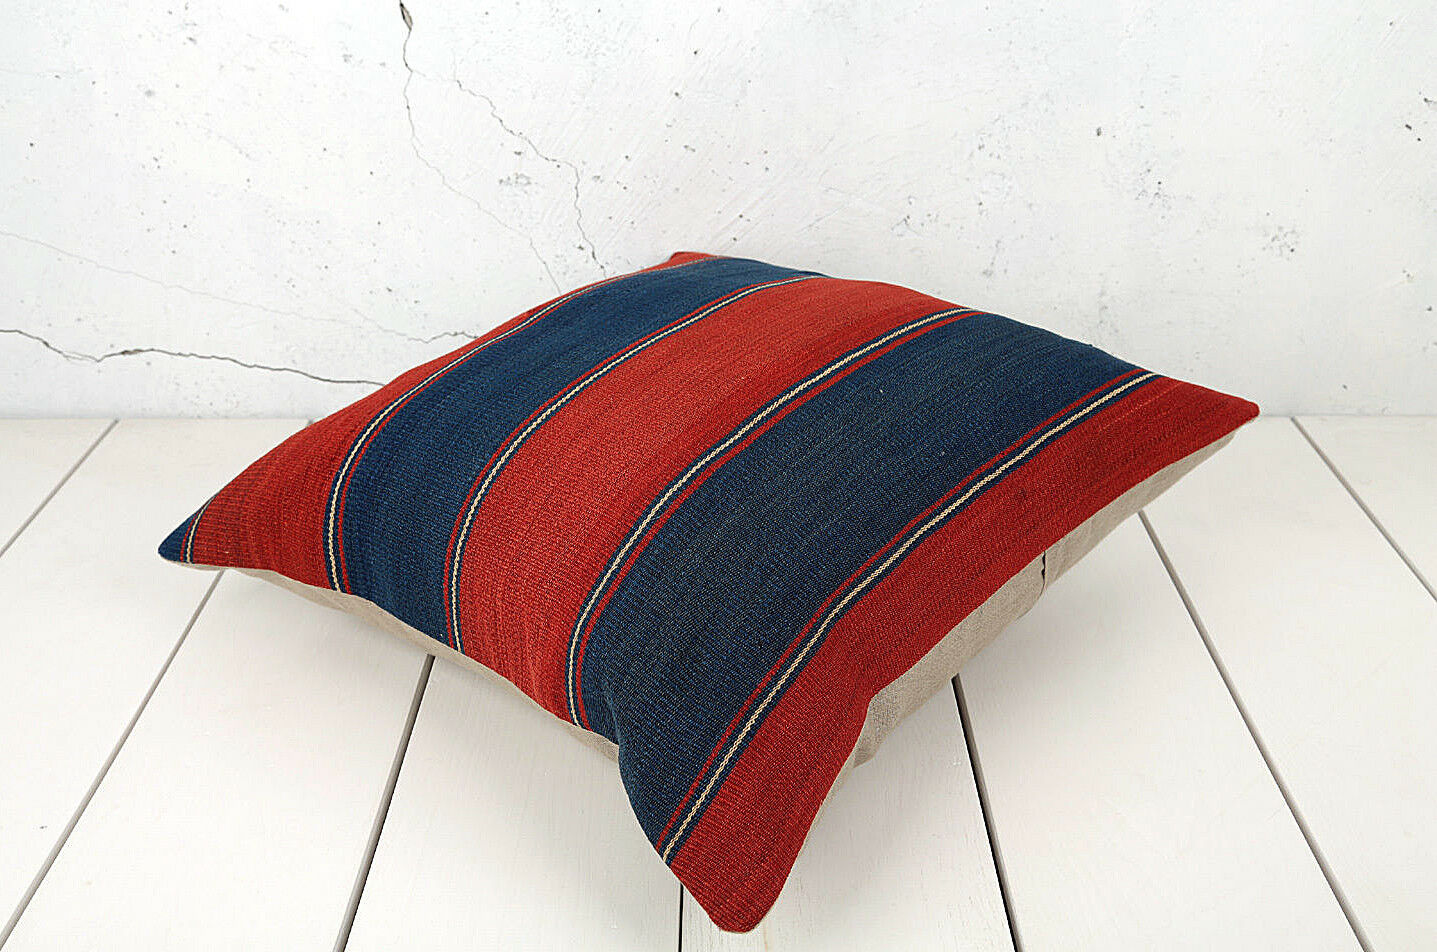 23.23  x 23.62  Pillow Cover Kilim Pillow Cover OLD FAST Shipment With UPS 04445